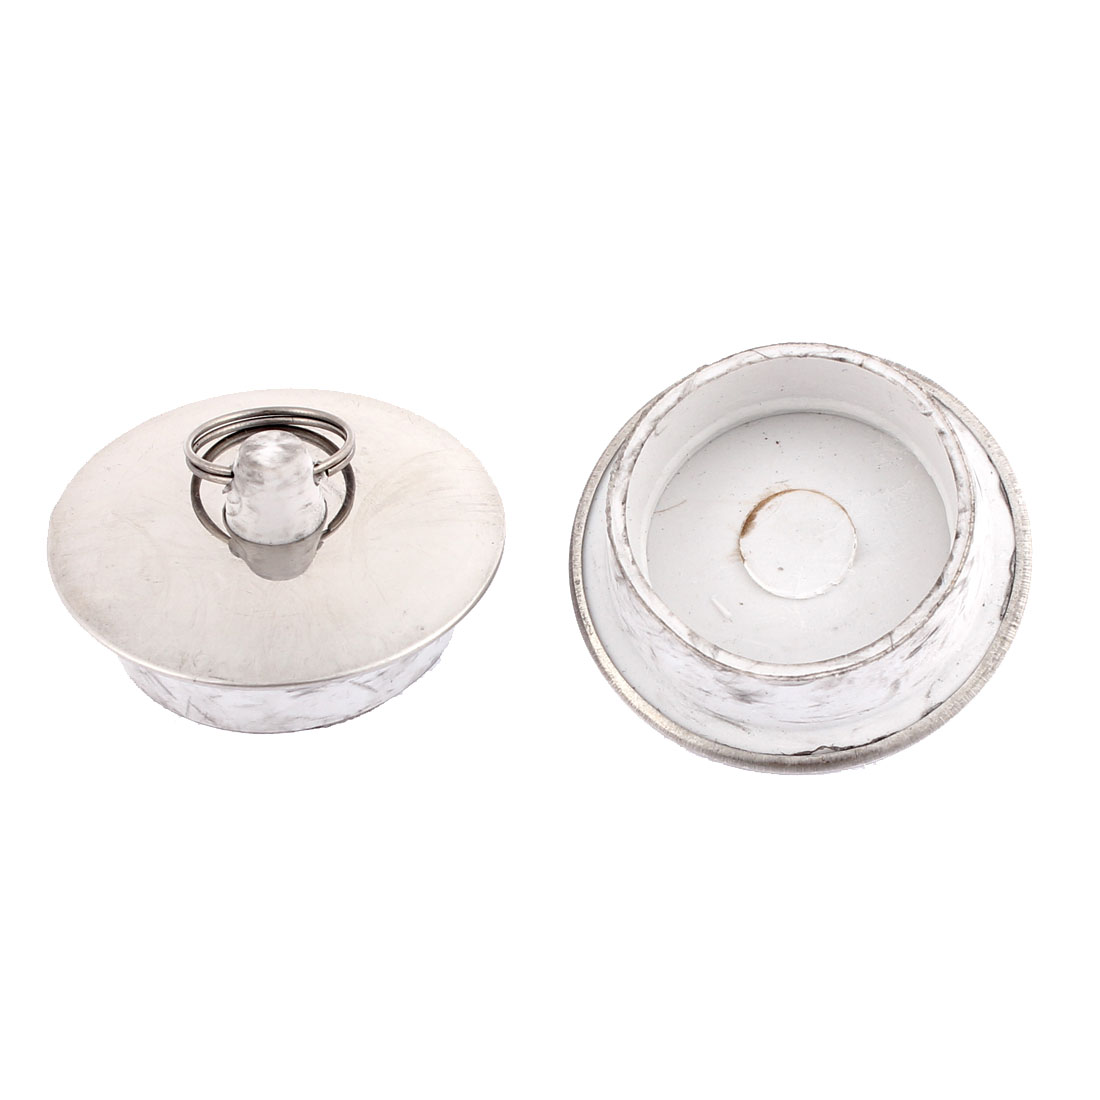 Kitchen Replacement Rubber Sink Garbage Disposal Stoppers Covers 50mm Dia 2pcs